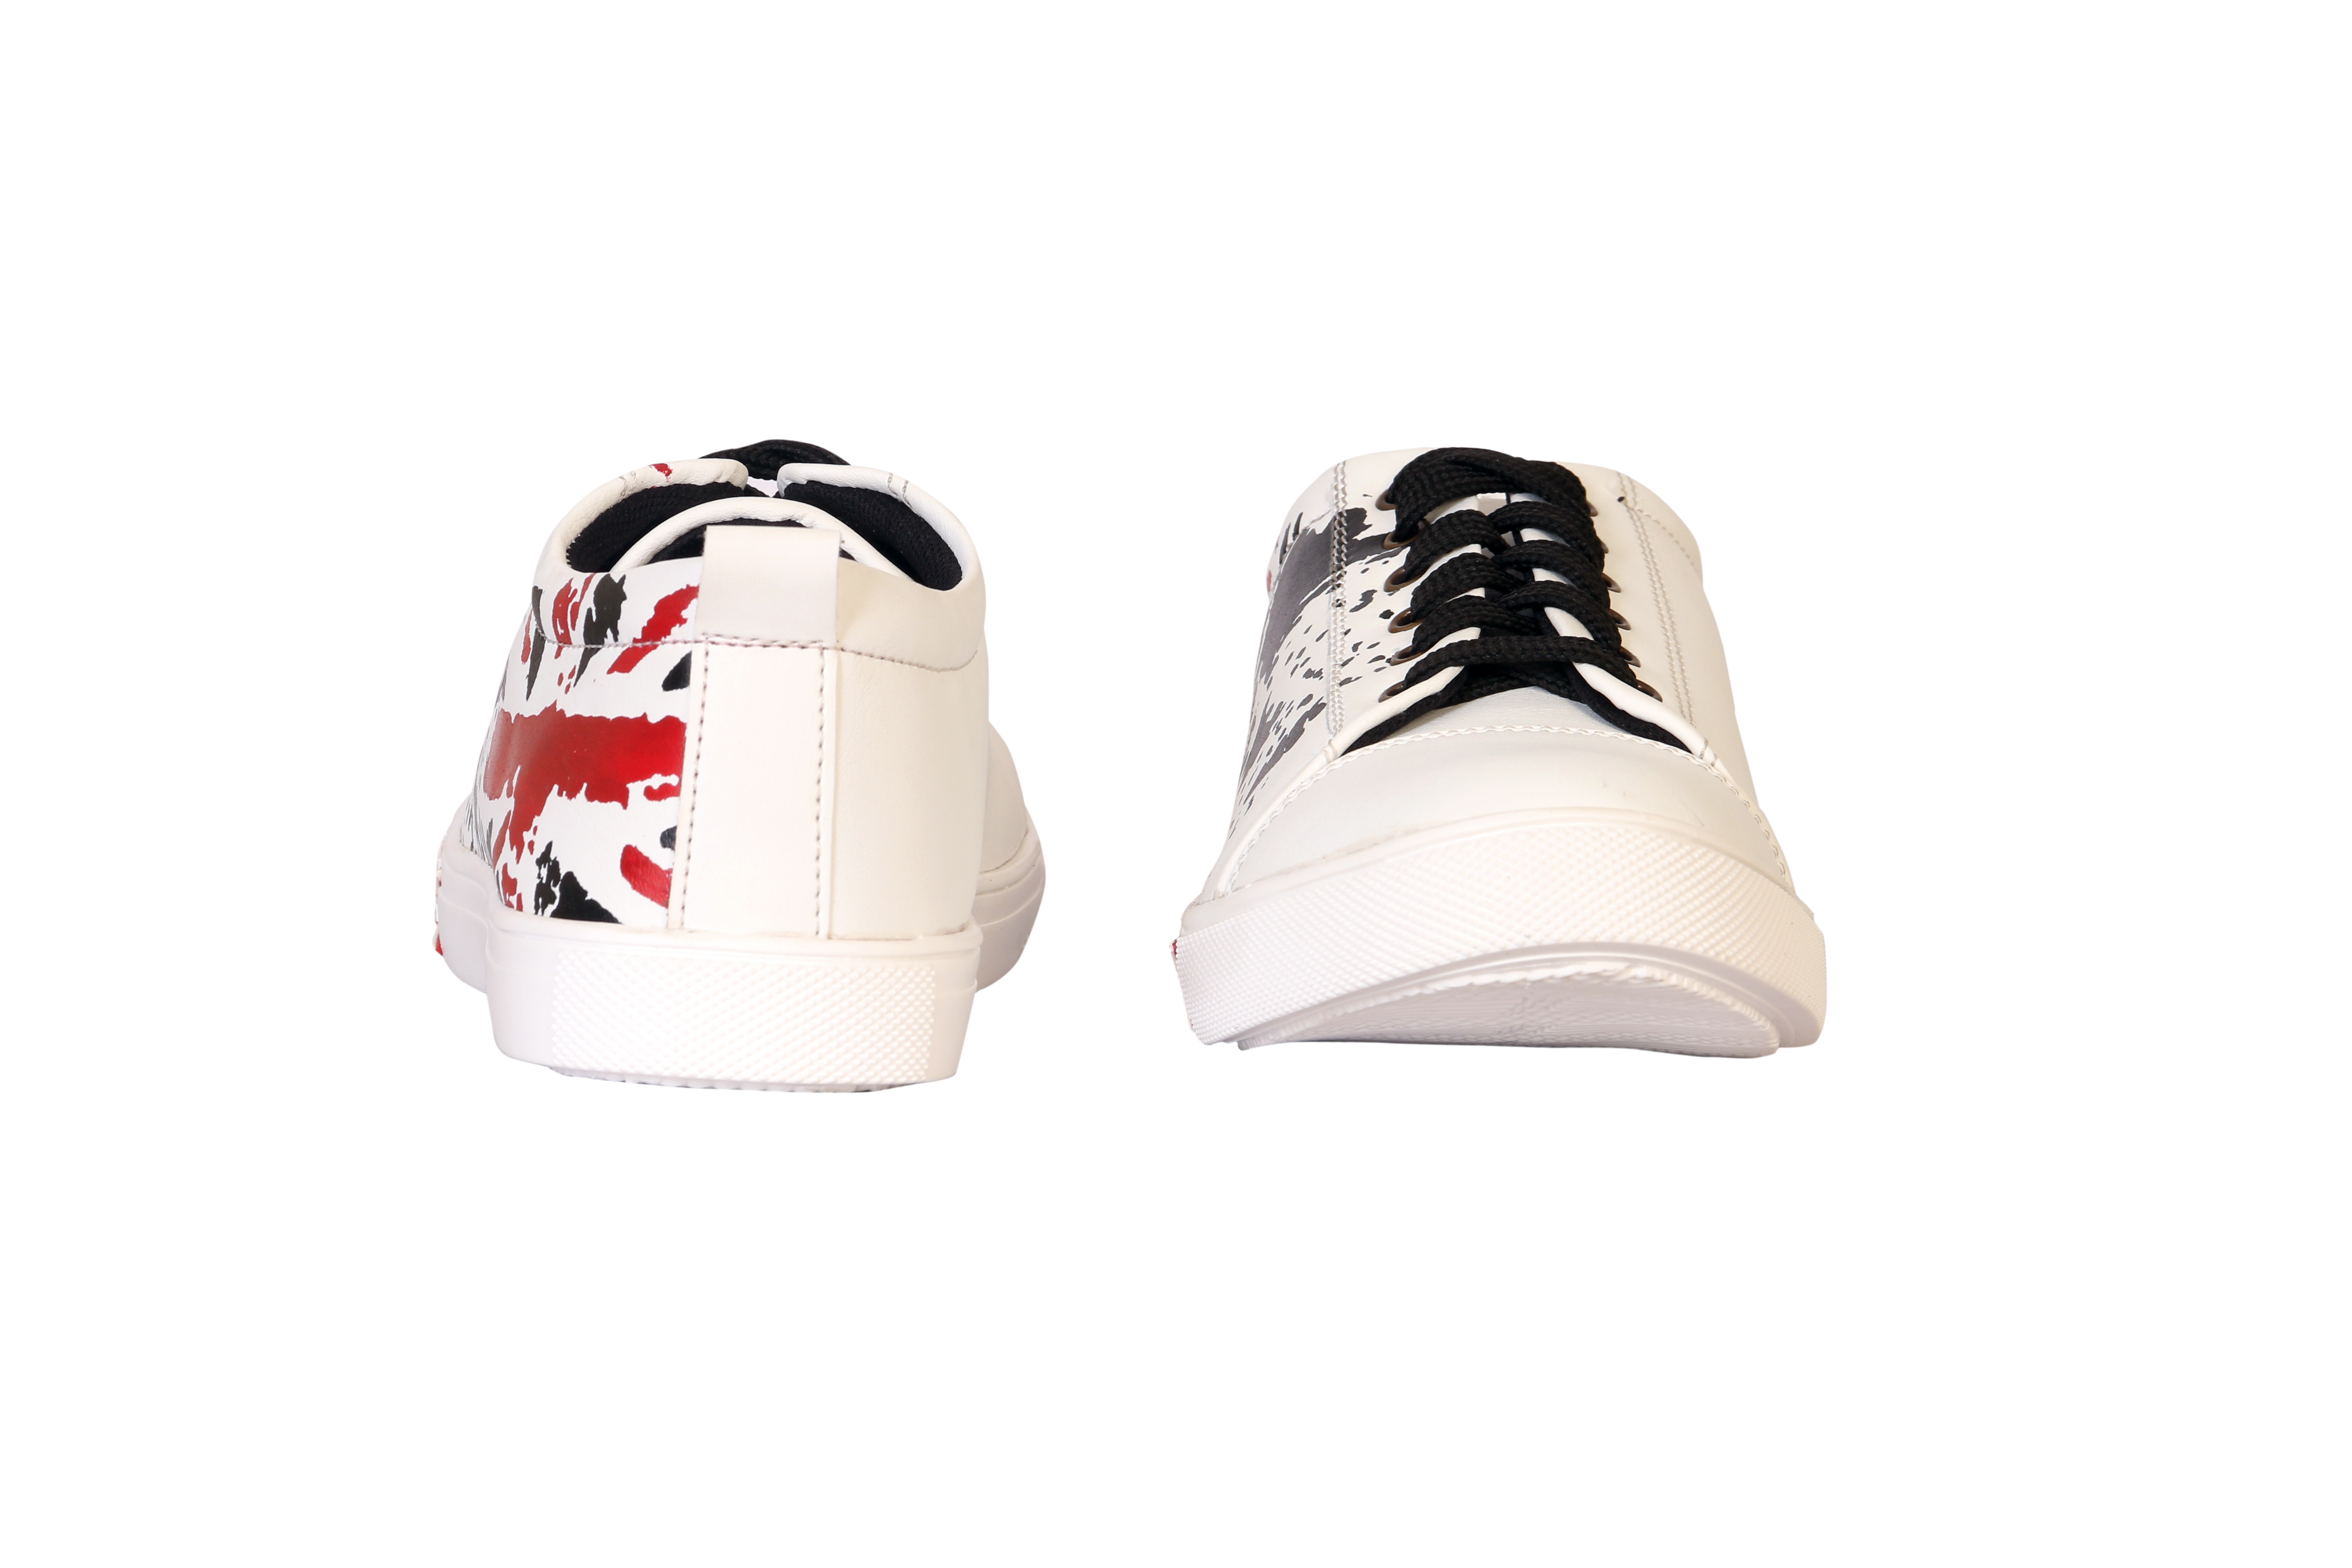 PRINTED STYLISH CASUAL SHOES FOR MEN